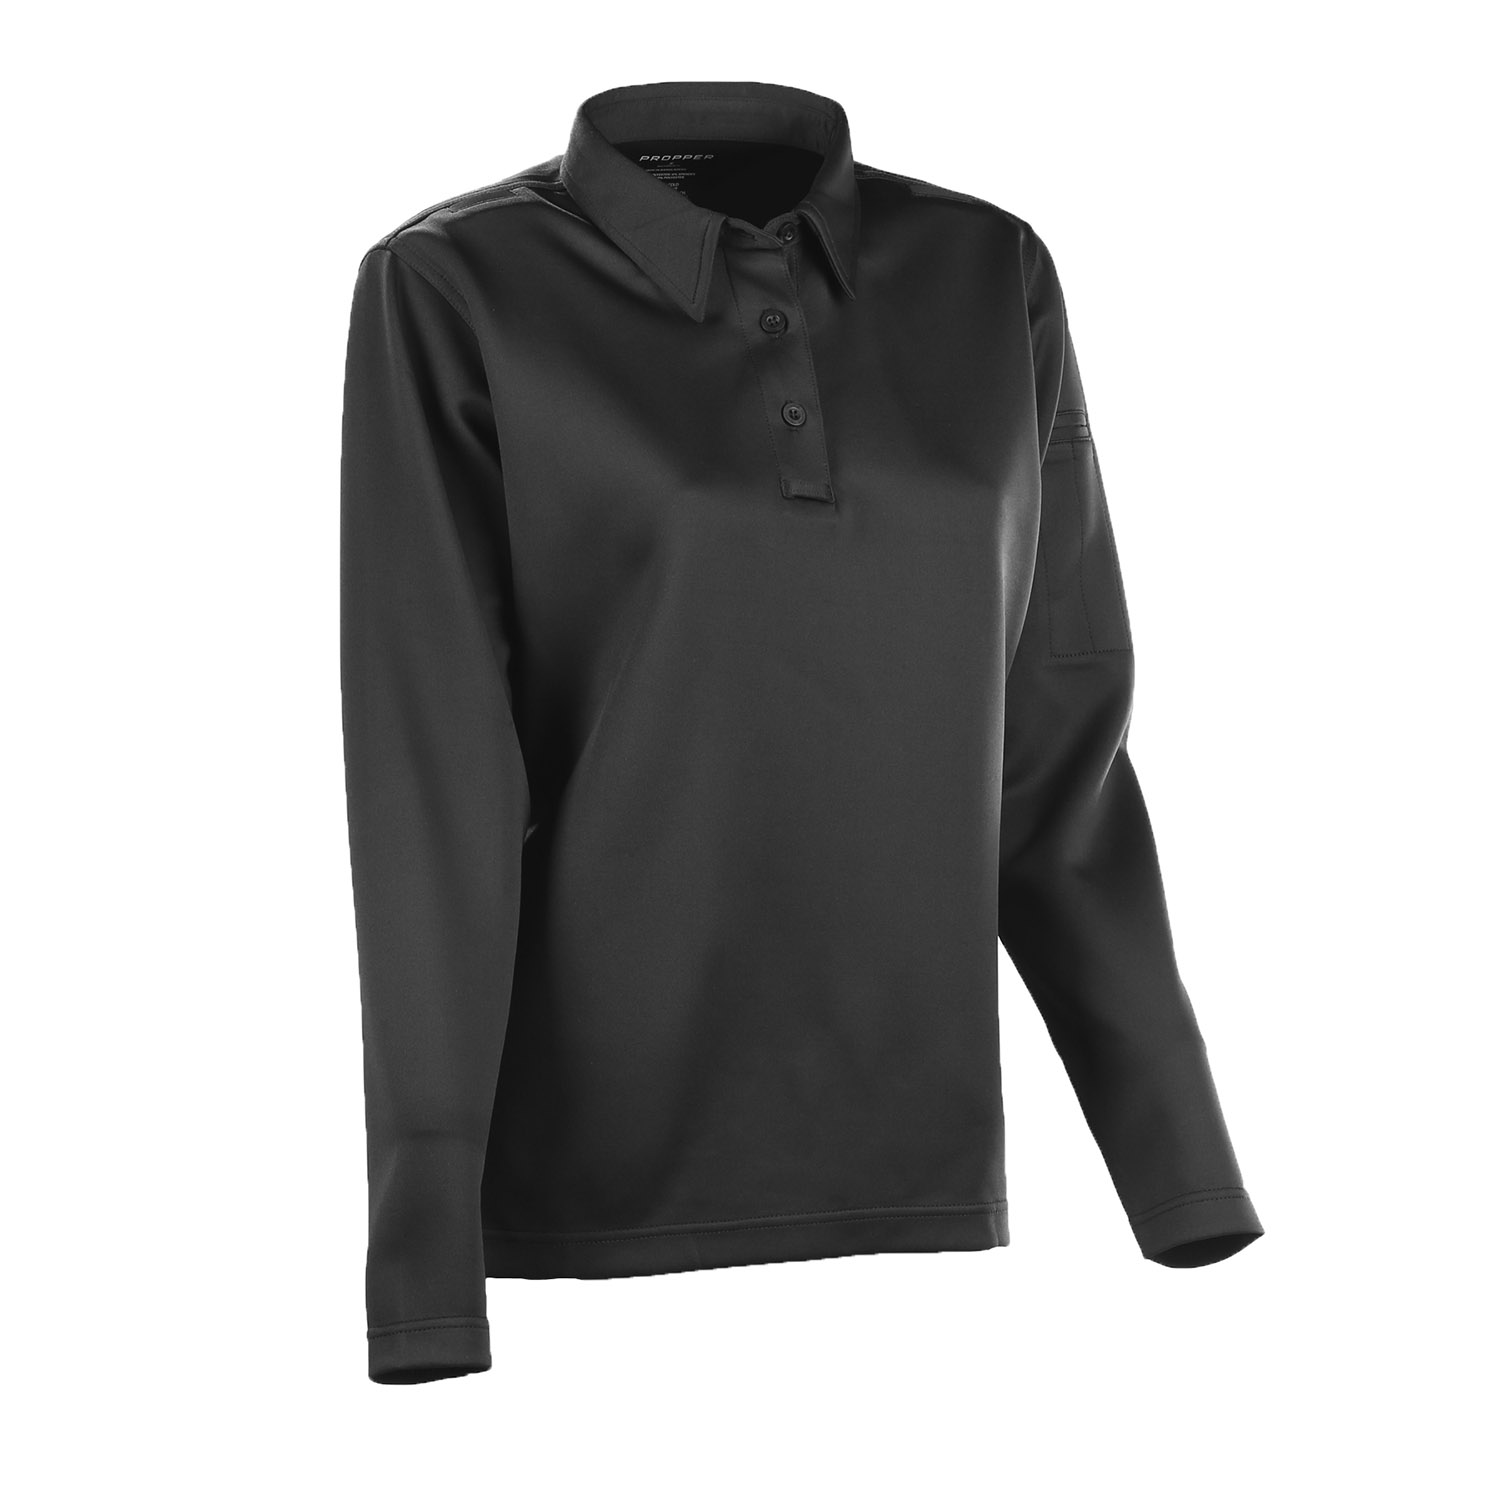 Propper Women's Long Sleeve I.C.E. Performance Polo